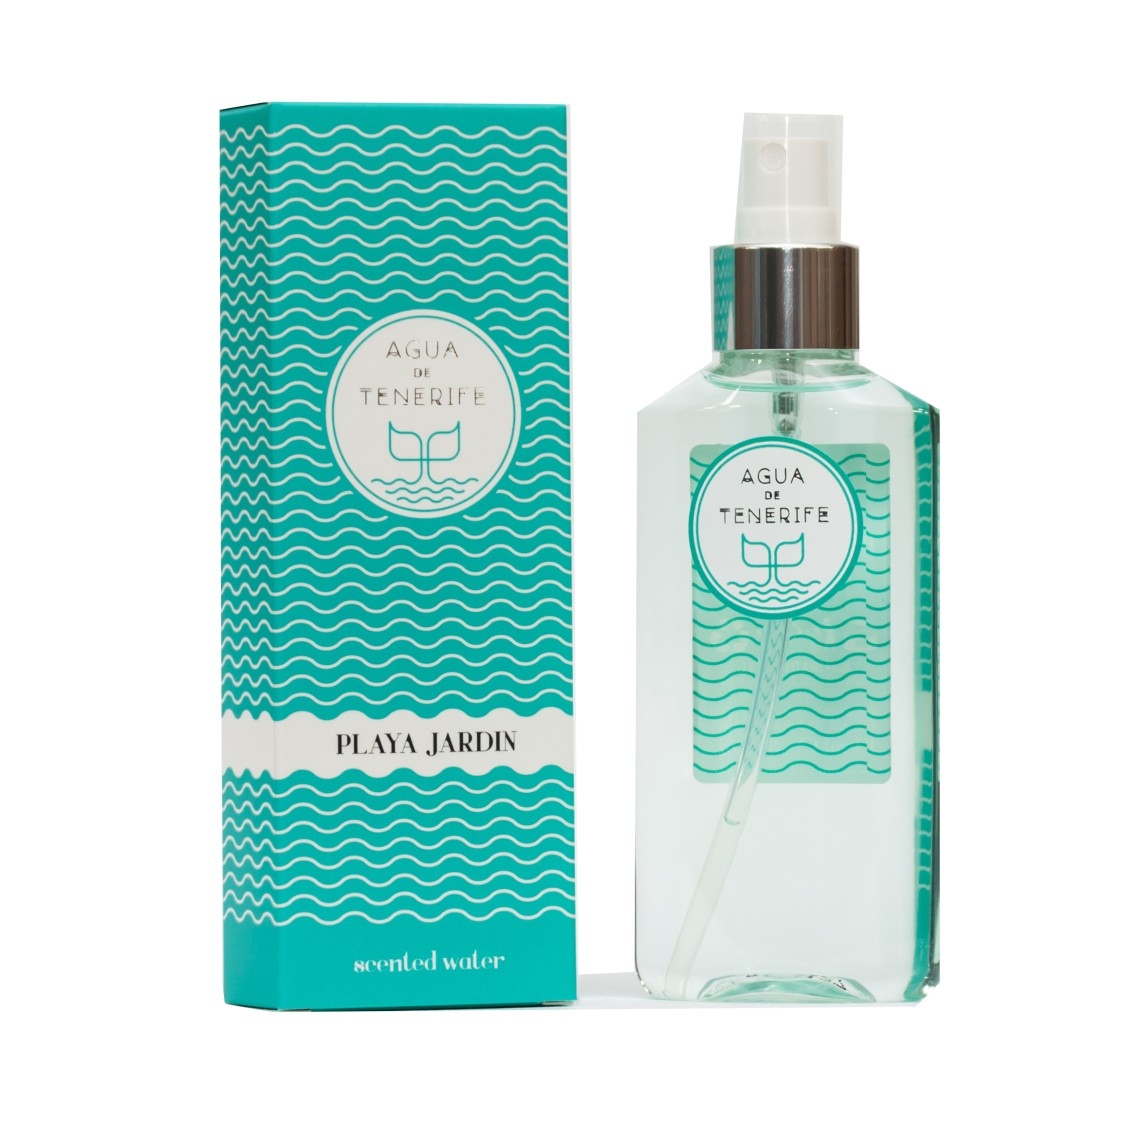 shop Agua de Tenerife  LAS FRAGANCIAS DE LA ISLA: Playa Jardin Scented Water 100 ml.